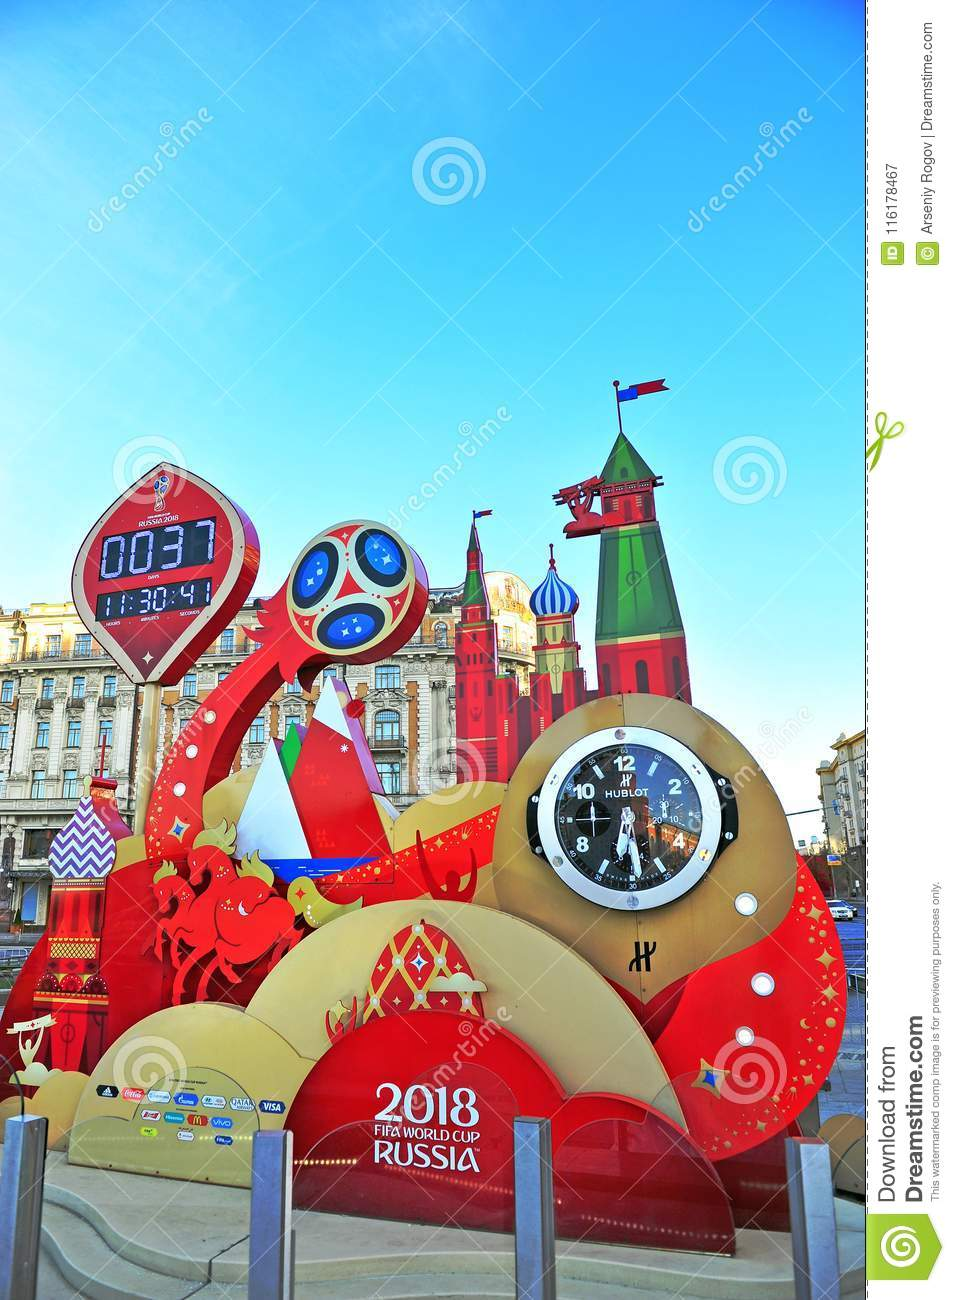 Fifa world cup 2018 countdown clock at the heart of moscow in wi.